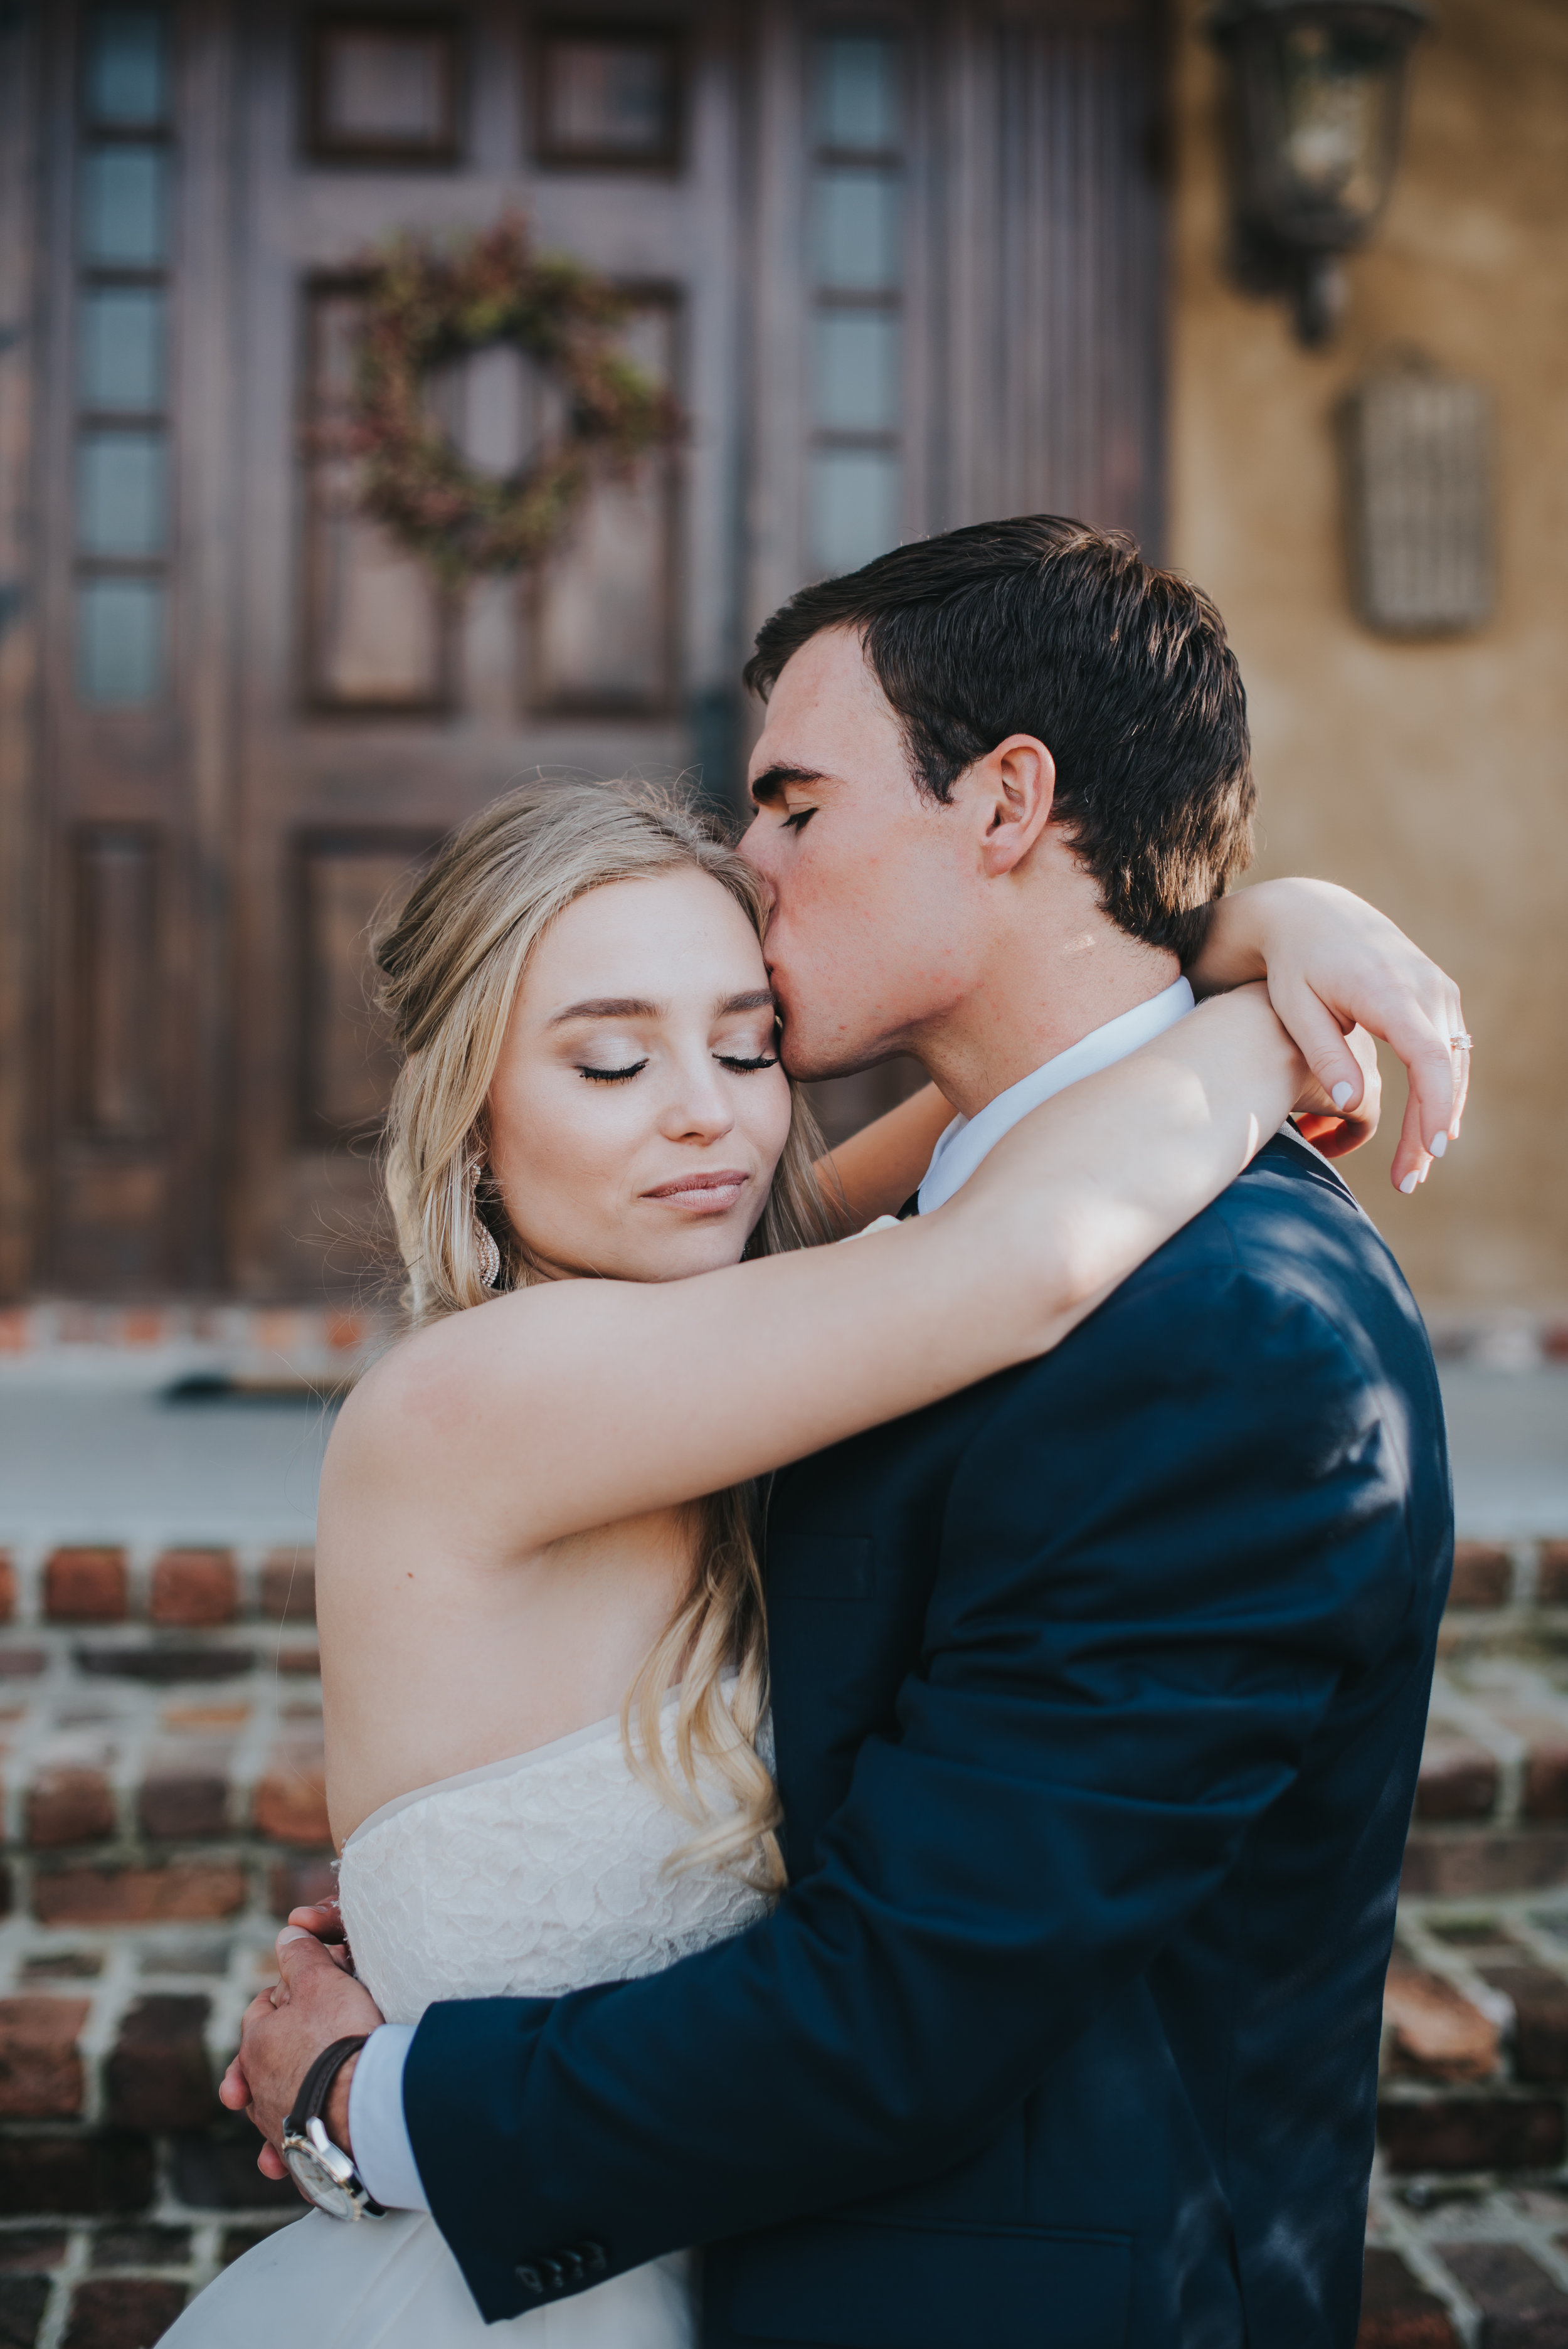 Adair + Sam 4.28.18-170.jpg